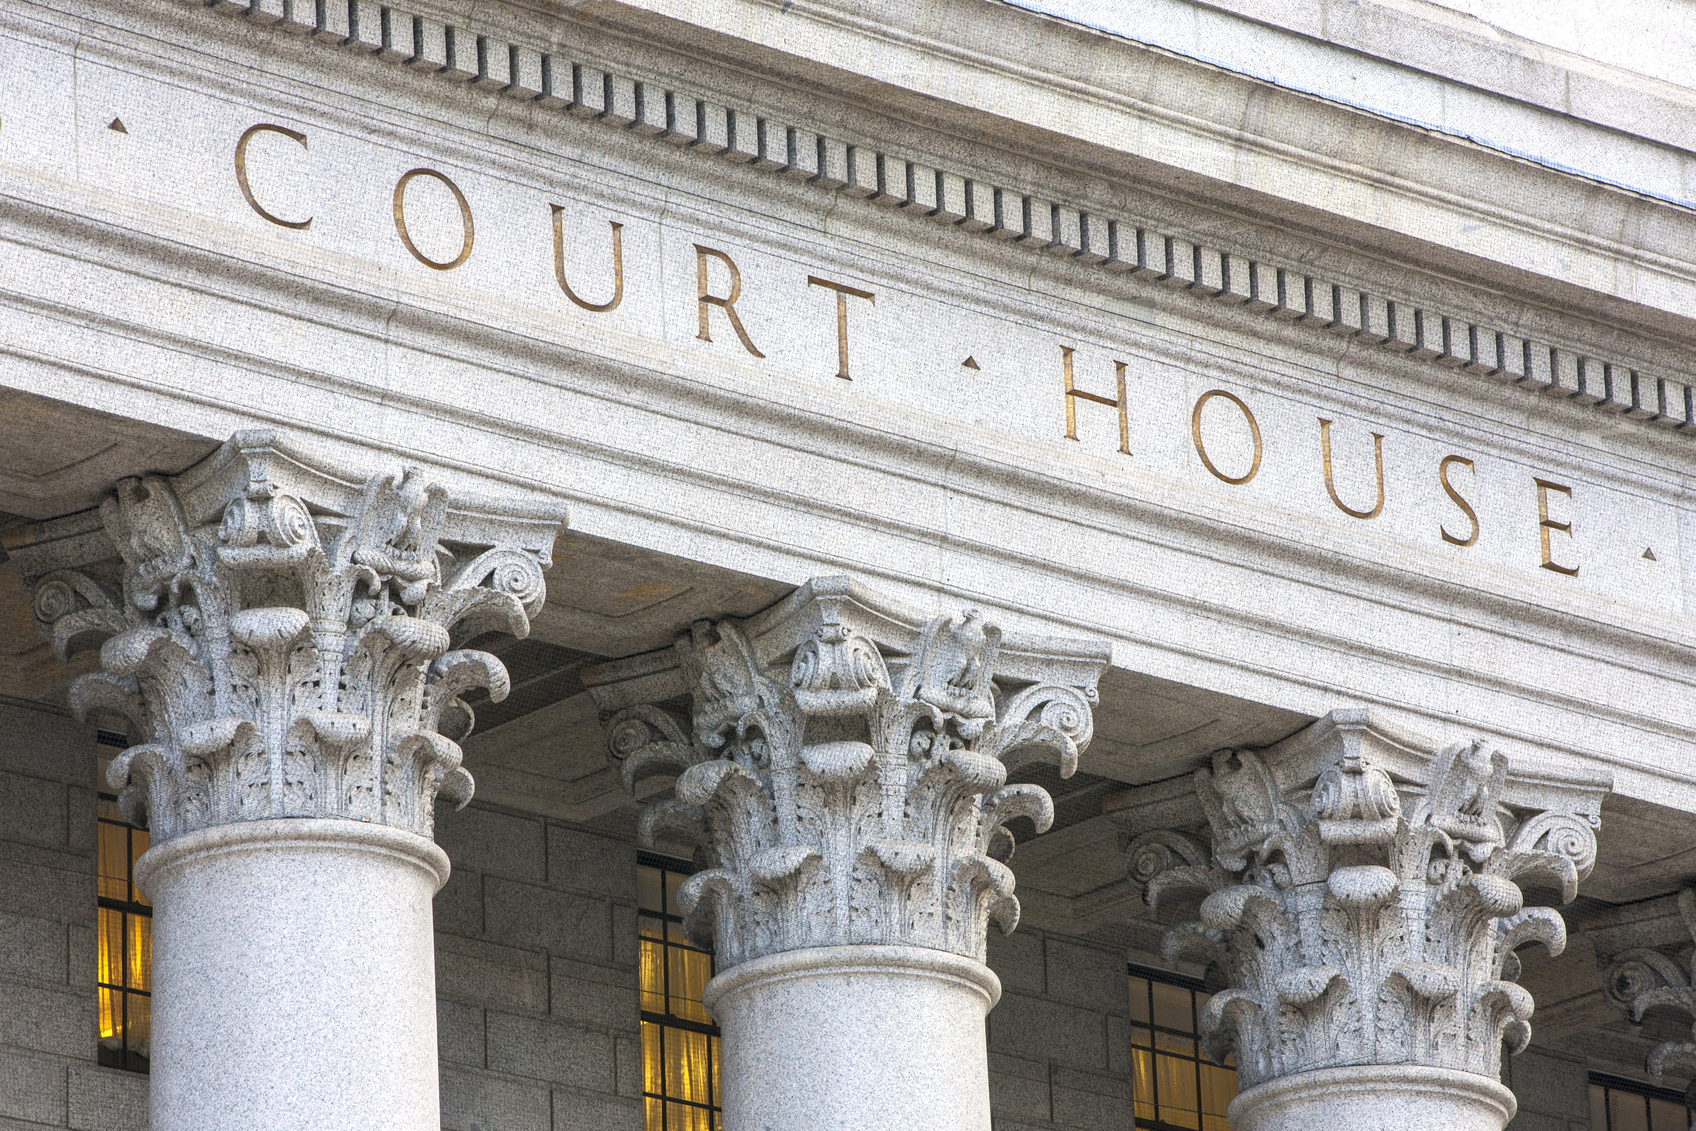 DOJ Yet to Enforce Supreme Court Ruling Extending Civil Rights Protections to LGTBQ Individuals